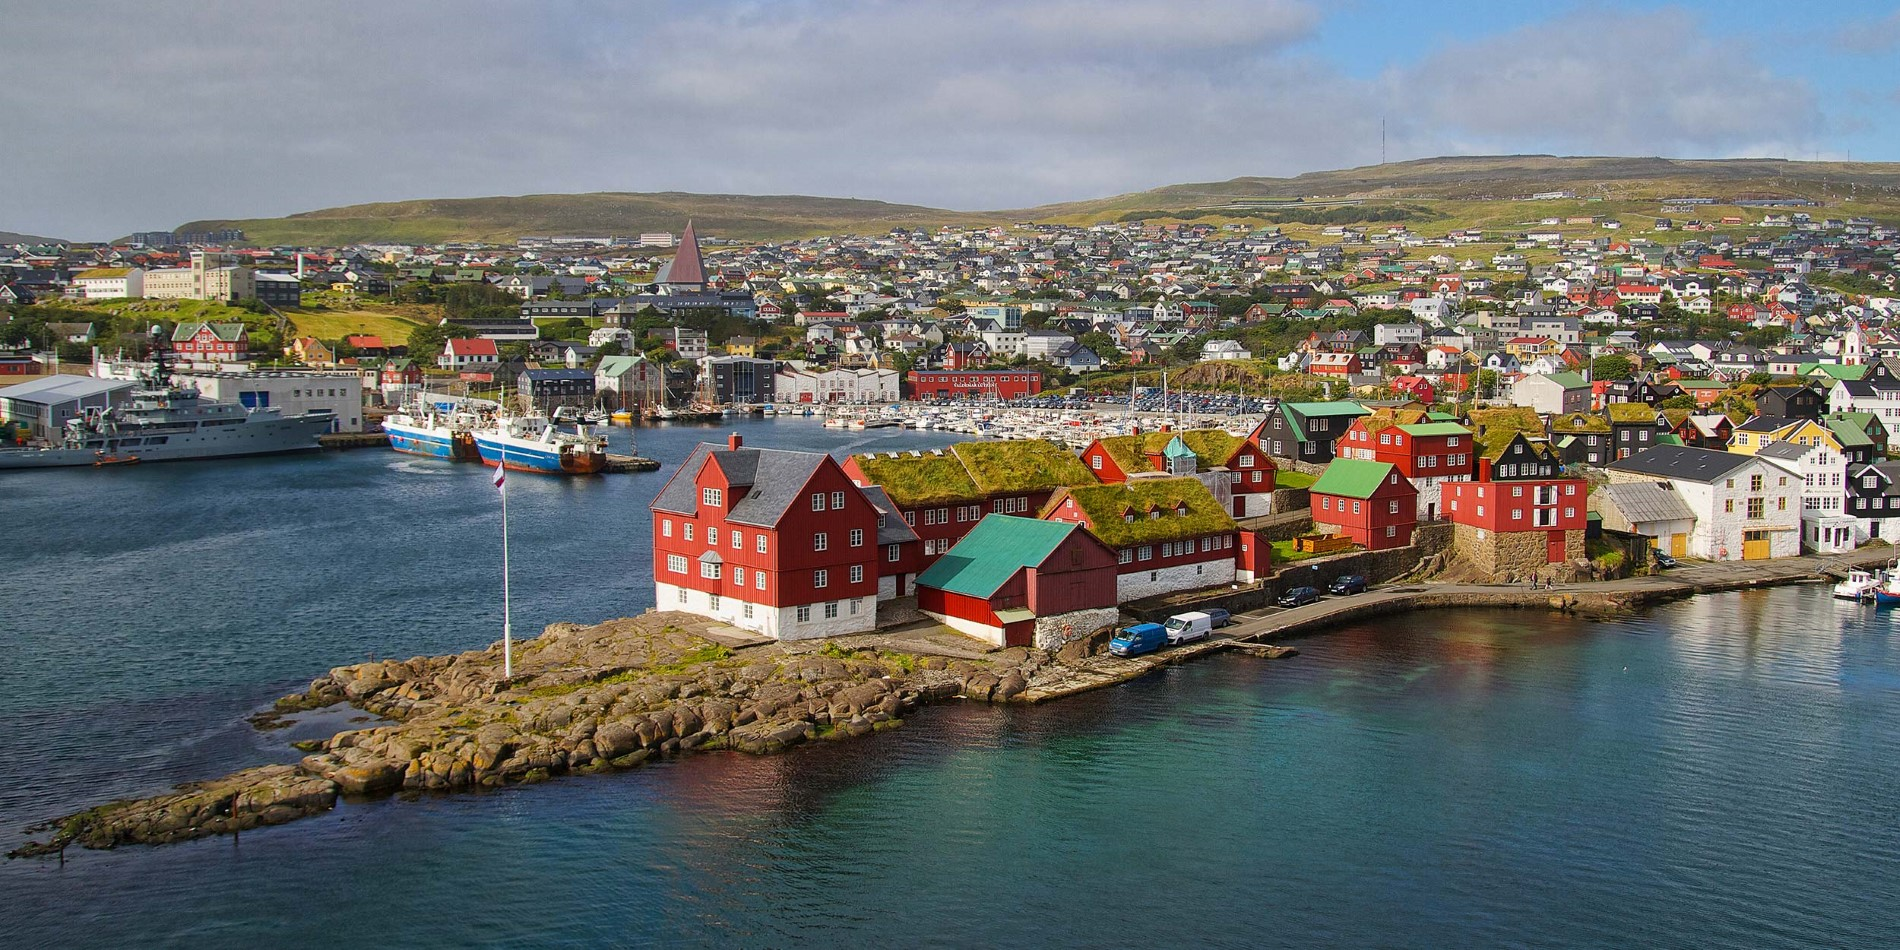 Tórshavn, the smallest capital in the world